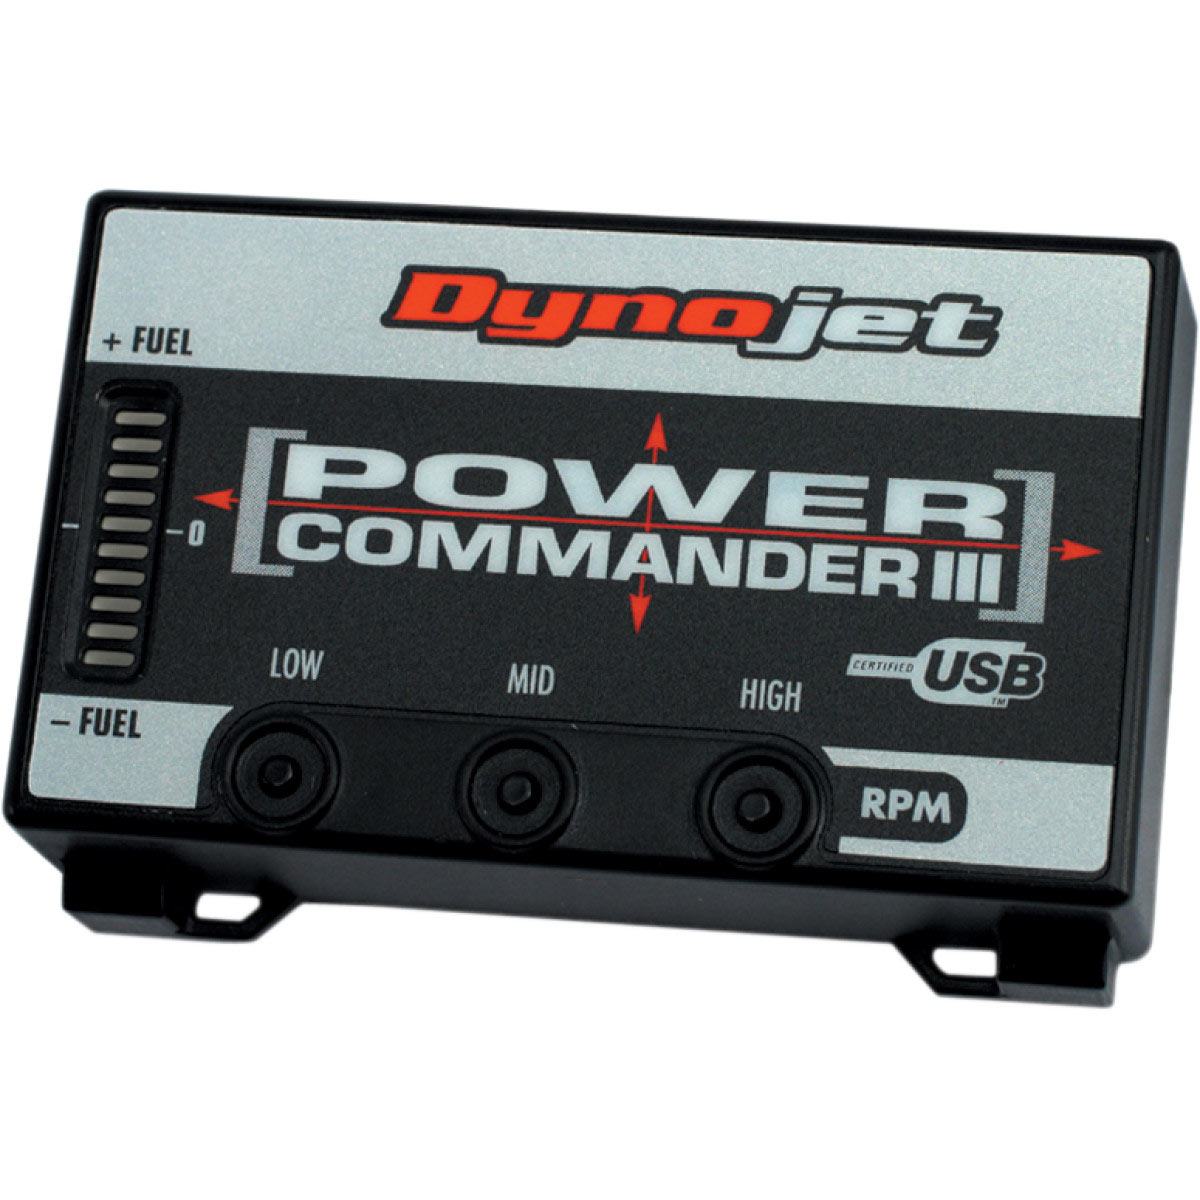 Dynojet Power Commander Iii Usb For Zx6r 03 04 Wiring Harness Kawasaki 636